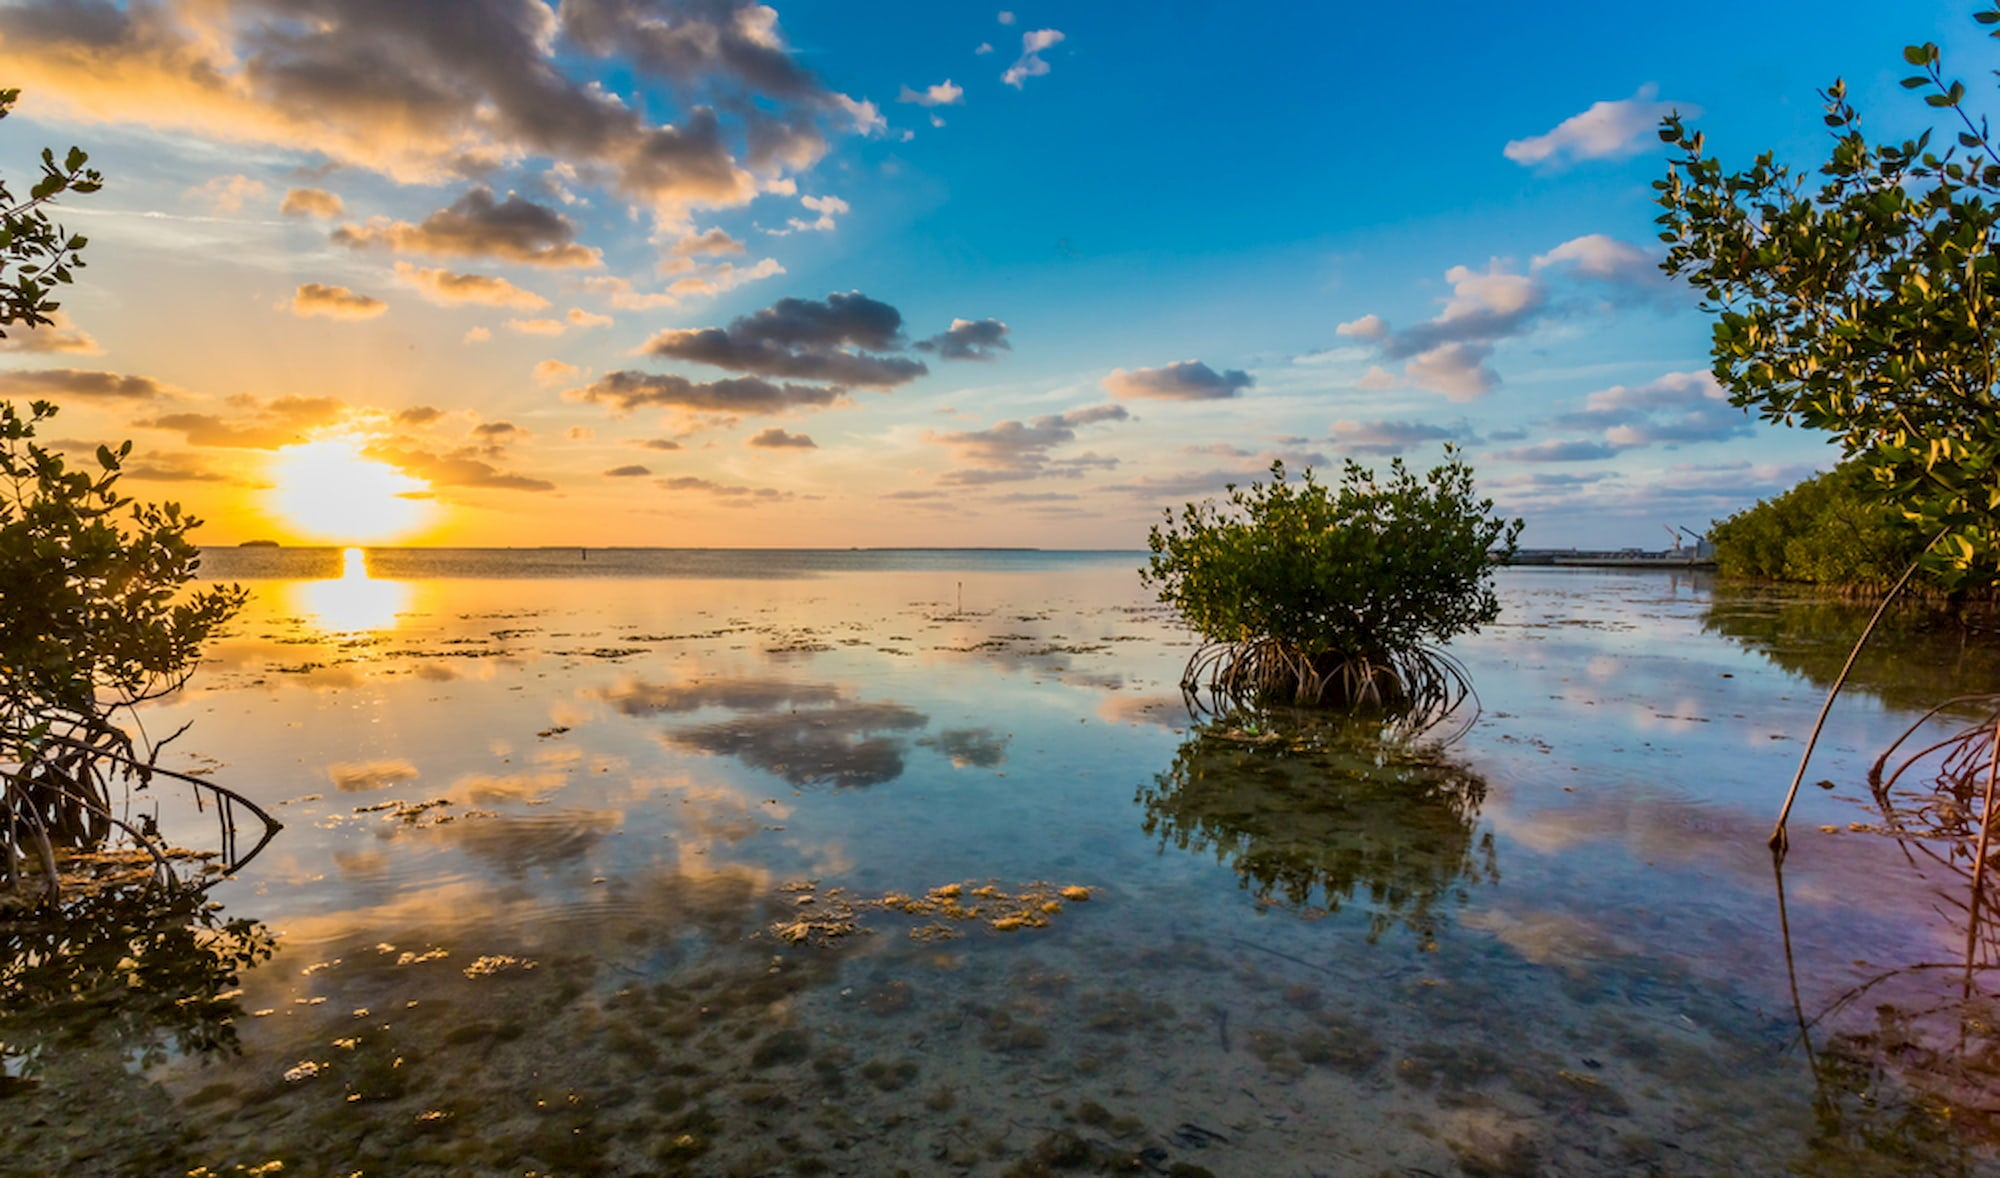 Mangroves at sunset in the Florida Keys.